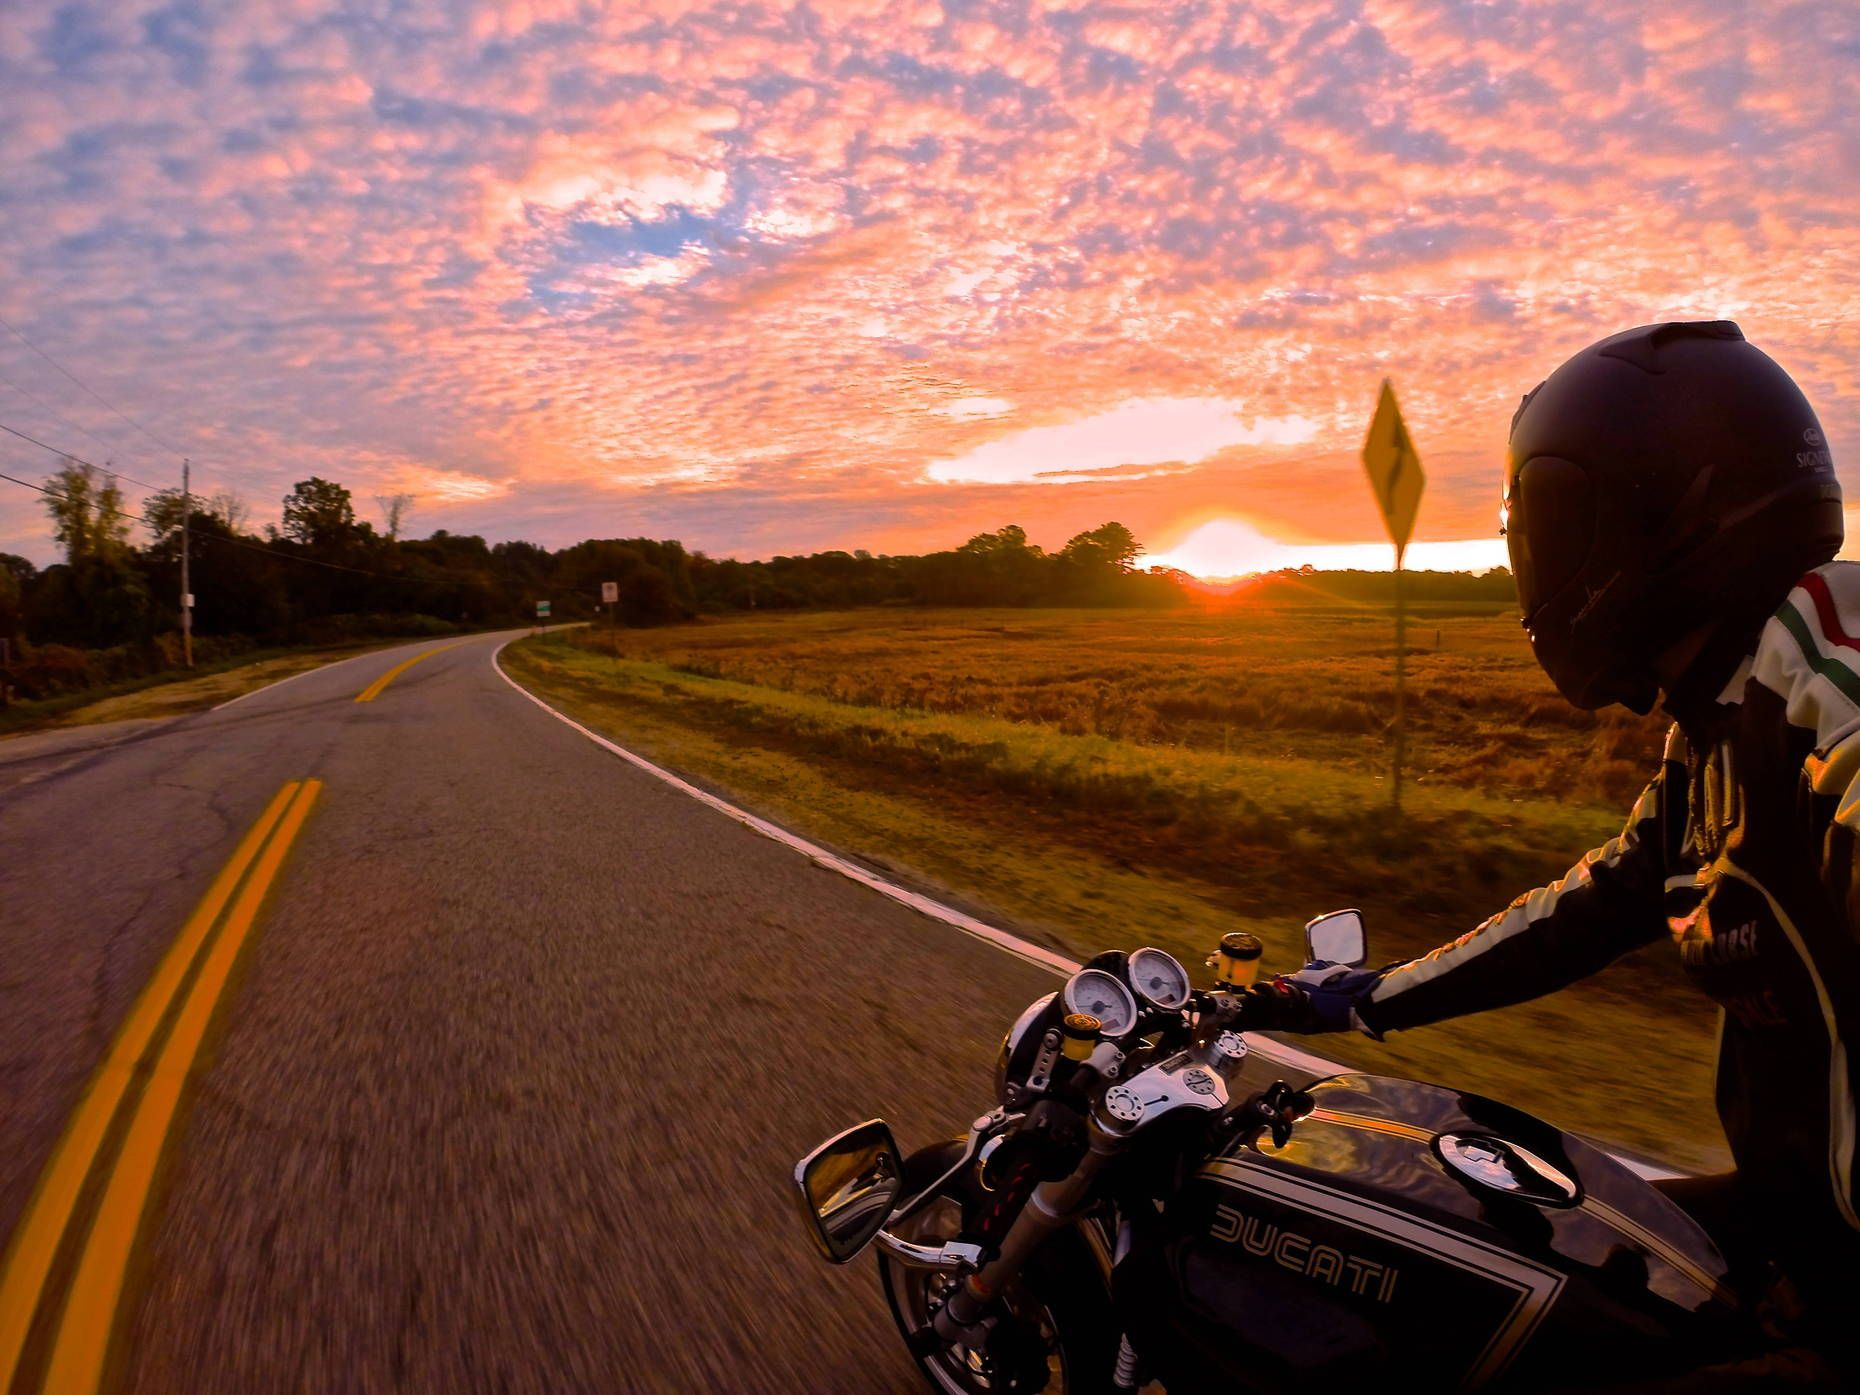 Gopro Athlete Tucker Perkins Catches The Sunrise On A Motorcycle